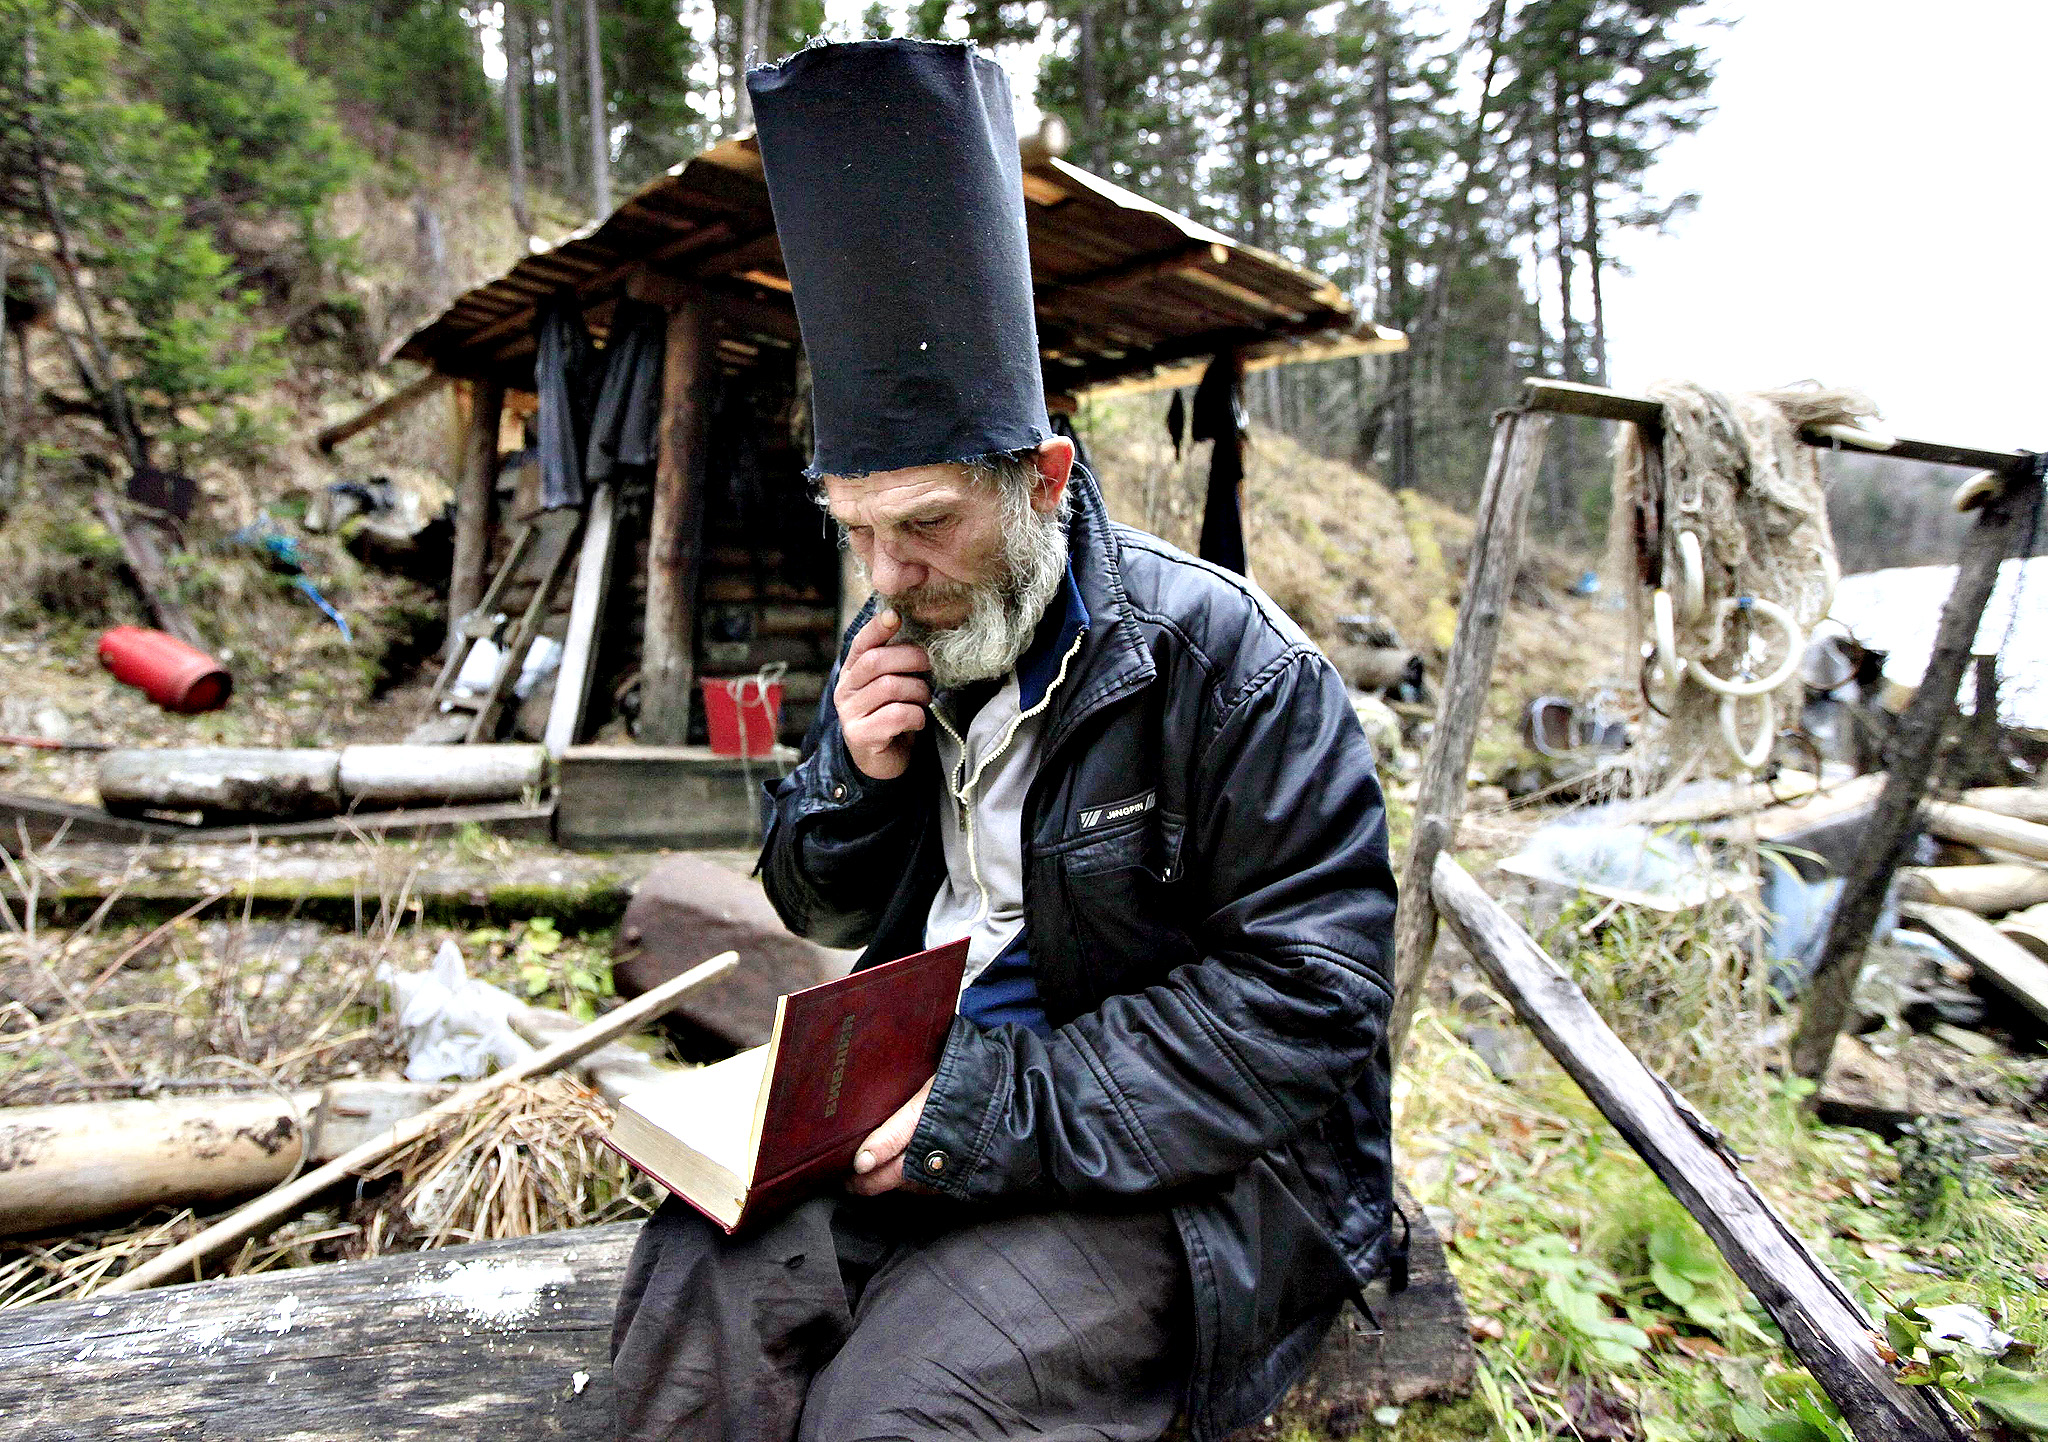 Former bargeman Viktor reads the Bible while wearing a hat he made for this purpose, outside his wooden hut located in a forest south of Russia's Siberian city of Krasnoyarsk...Former bargeman Viktor, 57, who refused to give his family name, reads the Bible while wearing a hat he made for this purpose, outside his wooden hut located in a forest some 55 km (34 miles) south of Russia's Siberian city of Krasnoyarsk, October 17, 2013. A decade ago, Viktor decided to lead the life of a hermit, and settled in this secluded forest area hidden from civilisation. He reads the Bible, and survives mainly on fish, berries, mushrooms and other food he can find.